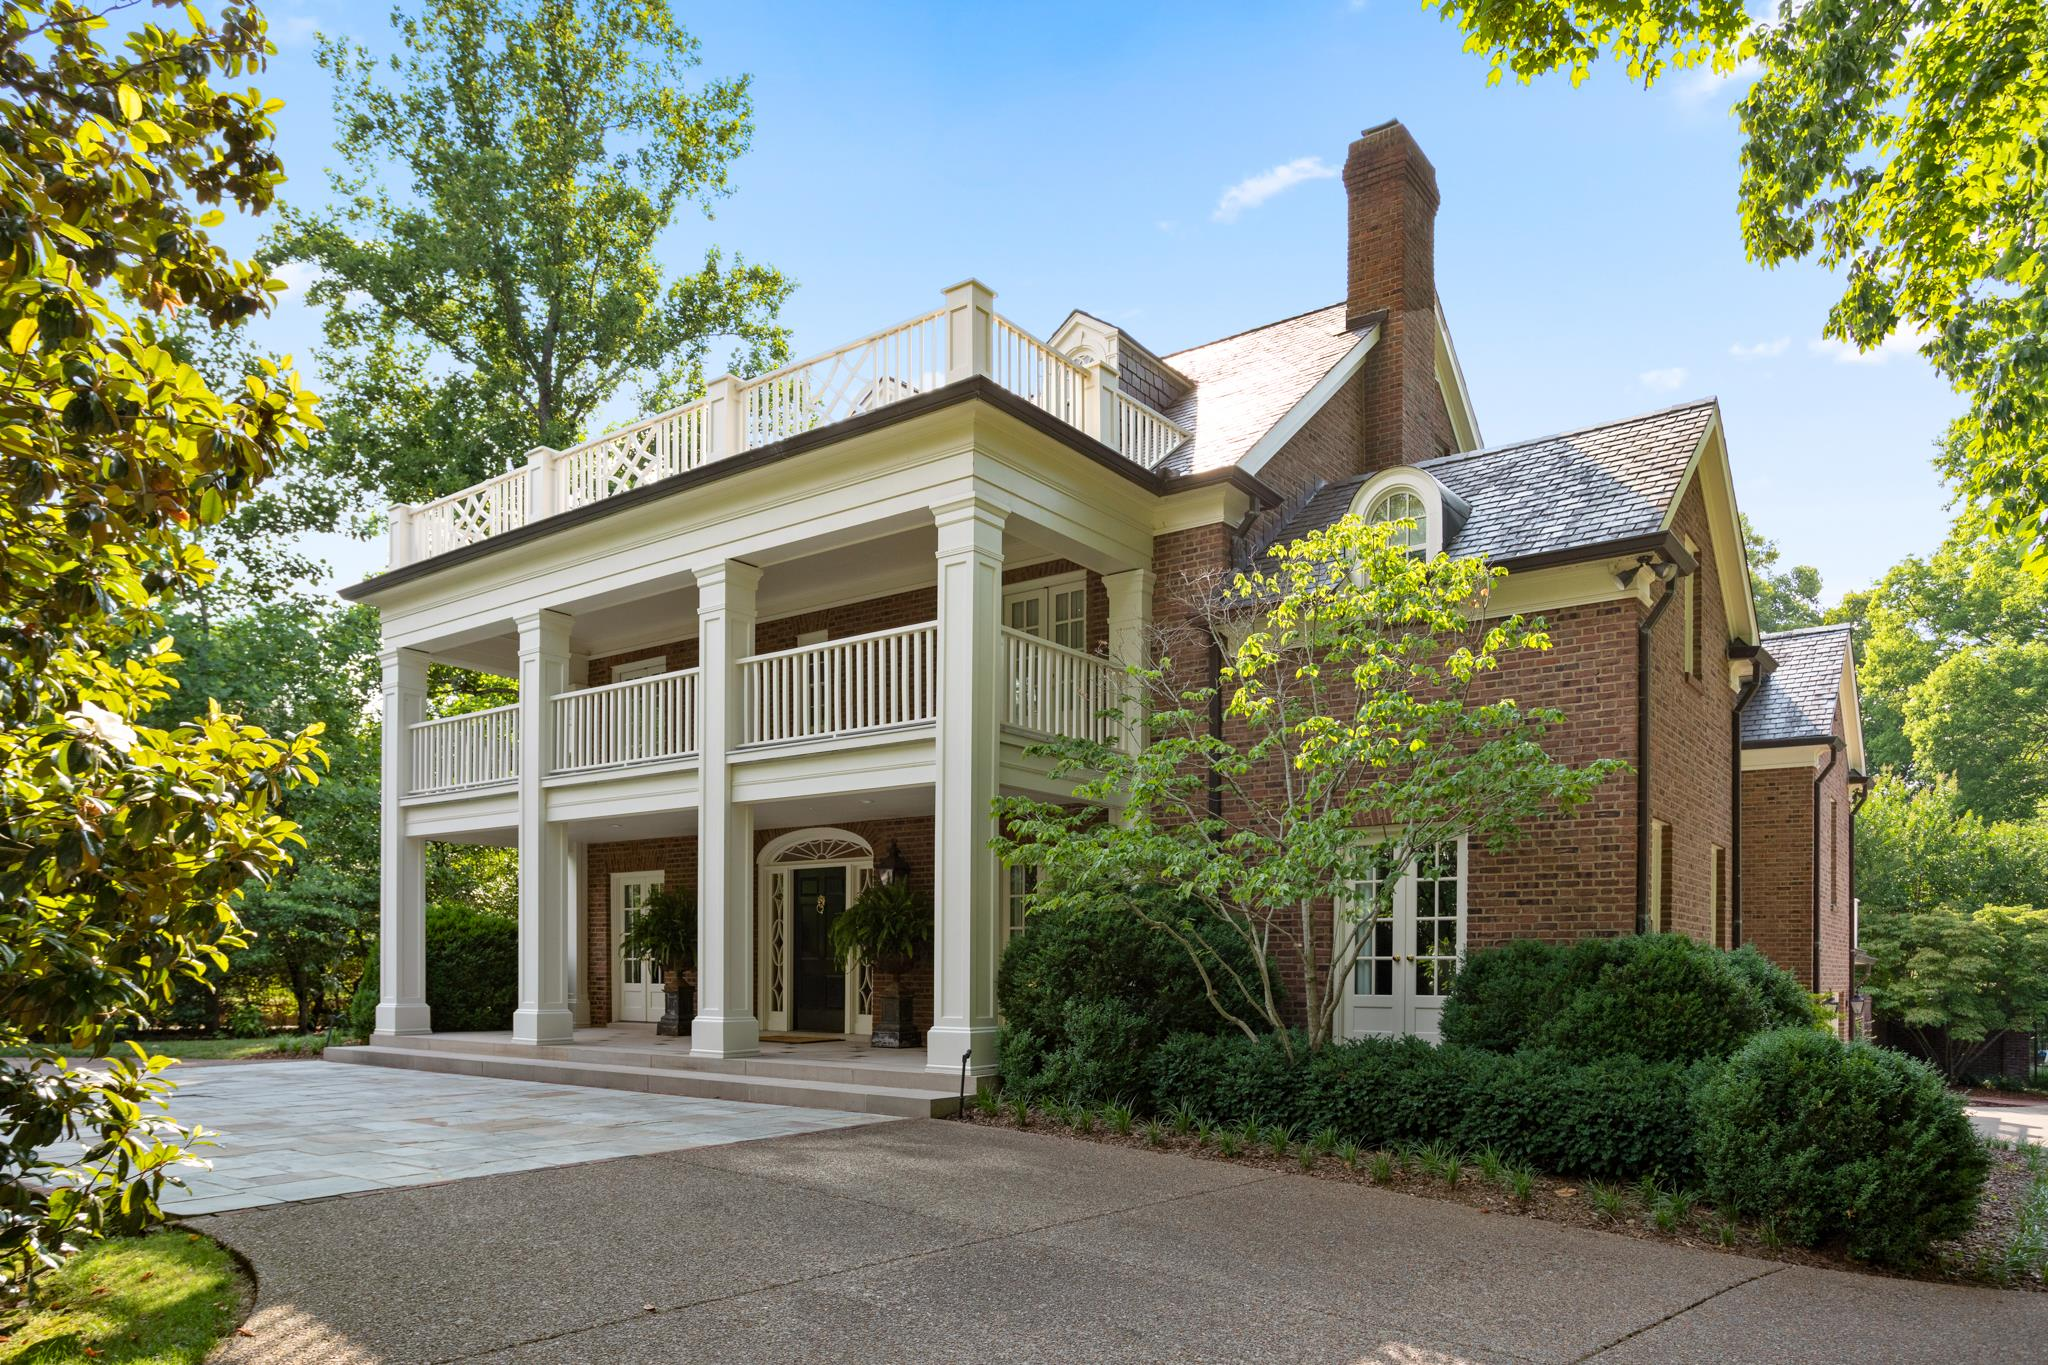 1109 Belle Meade Blvd, one of homes for sale in Belle Meade